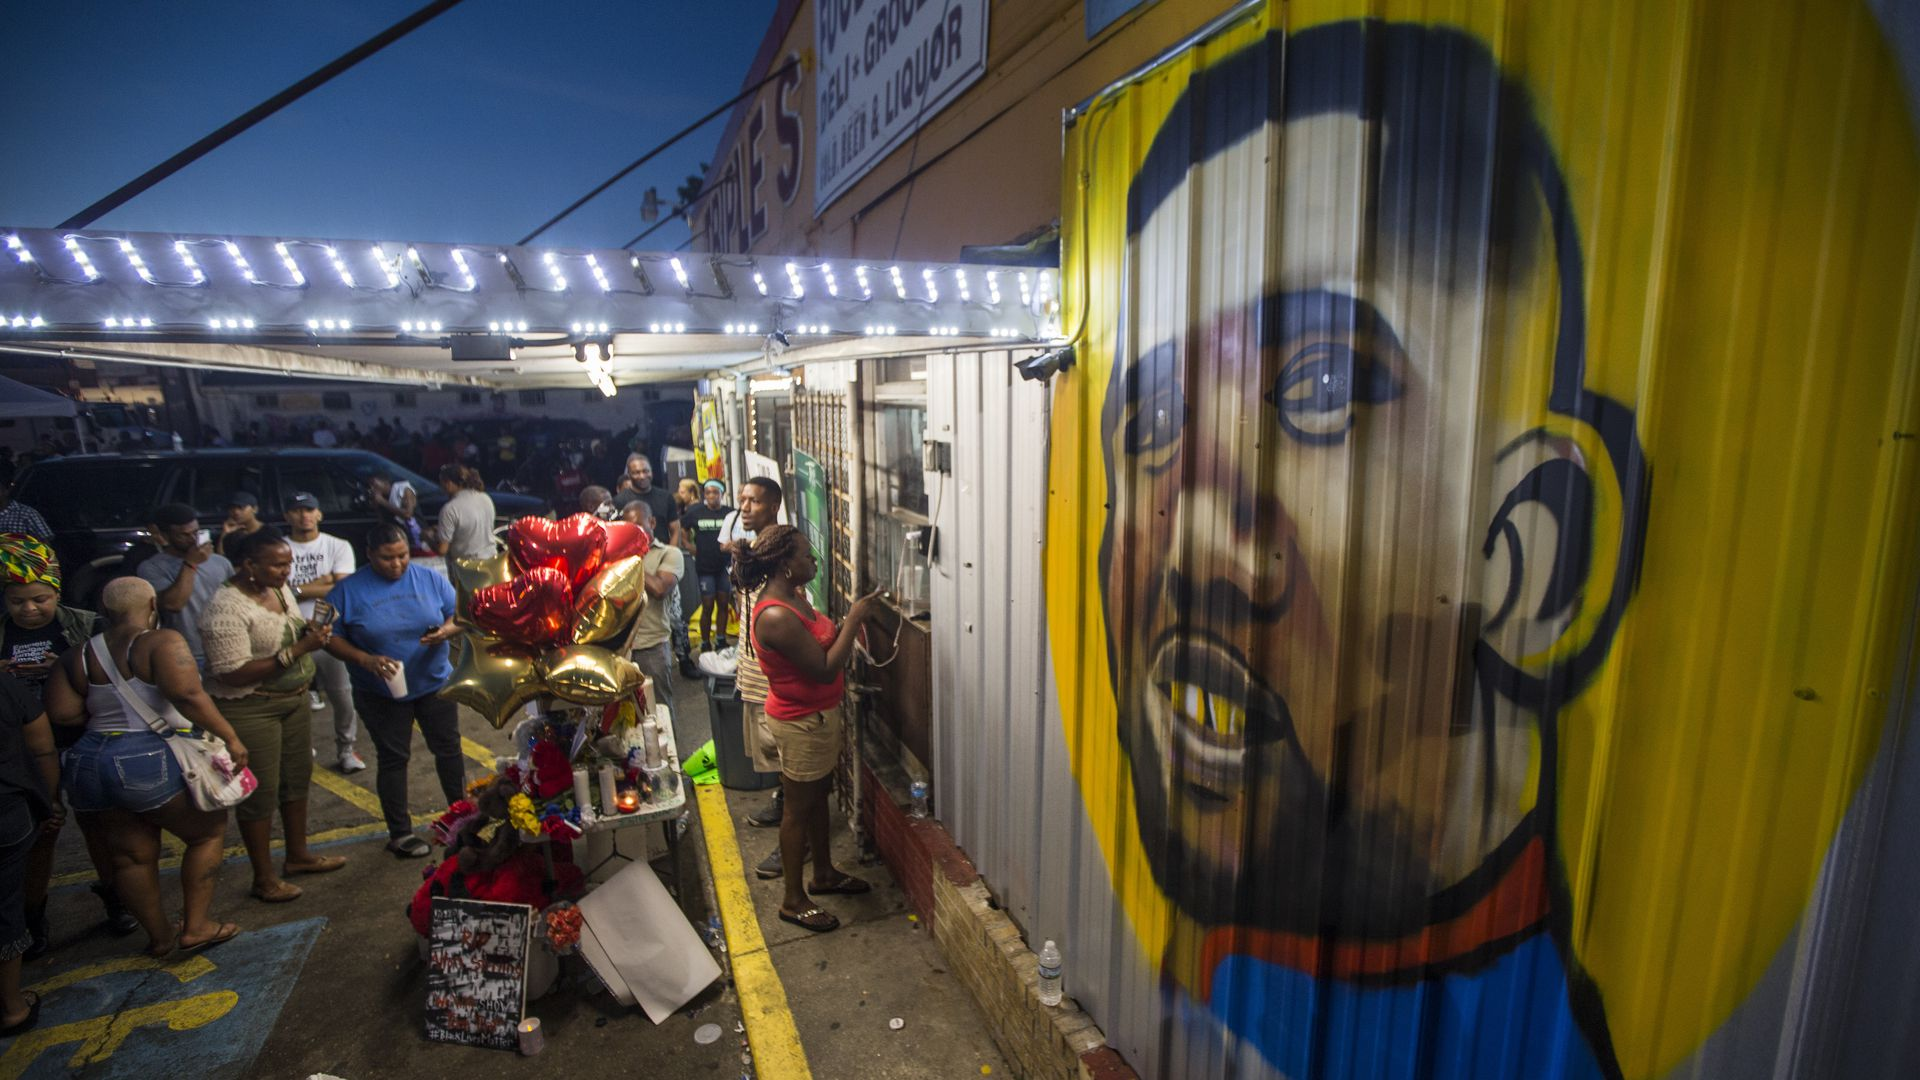 A mural of Alton Sterling.